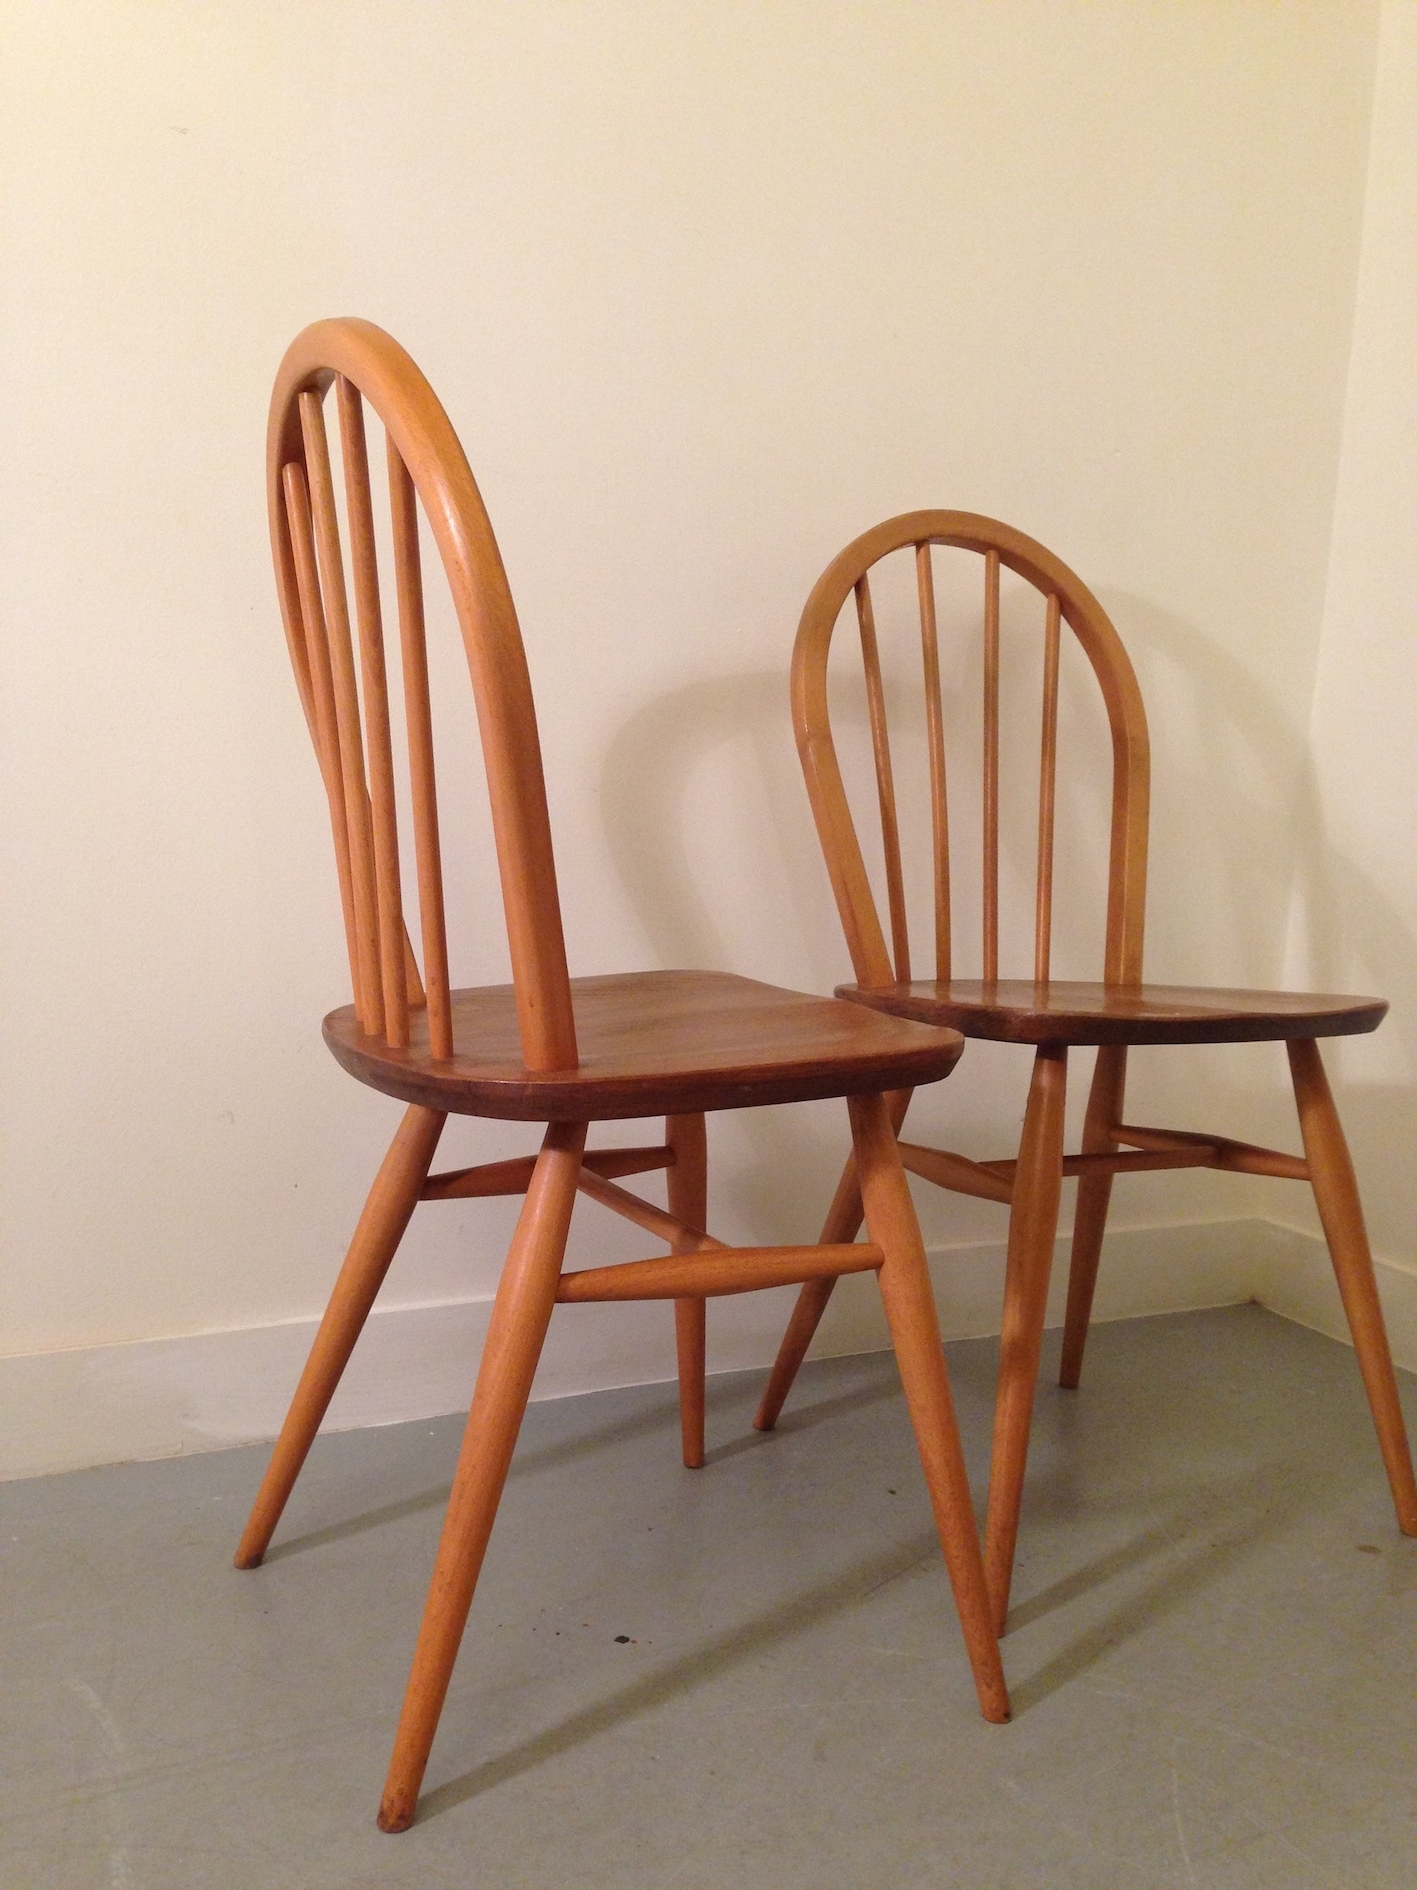 [%Chaise Scandinave Vintage] – 57 Images – 6 Chaises Scandinave En Intended For Latest Vintage Chaises Vintage Chaises Inside Trendy Chaise Scandinave Vintage] – 57 Images – 6 Chaises Scandinave En Most Recent Vintage Chaises Pertaining To Chaise Scandinave Vintage] – 57 Images – 6 Chaises Scandinave En Well Known Chaise Scandinave Vintage] – 57 Images – 6 Chaises Scandinave En Within Vintage Chaises%] (View 15 of 15)